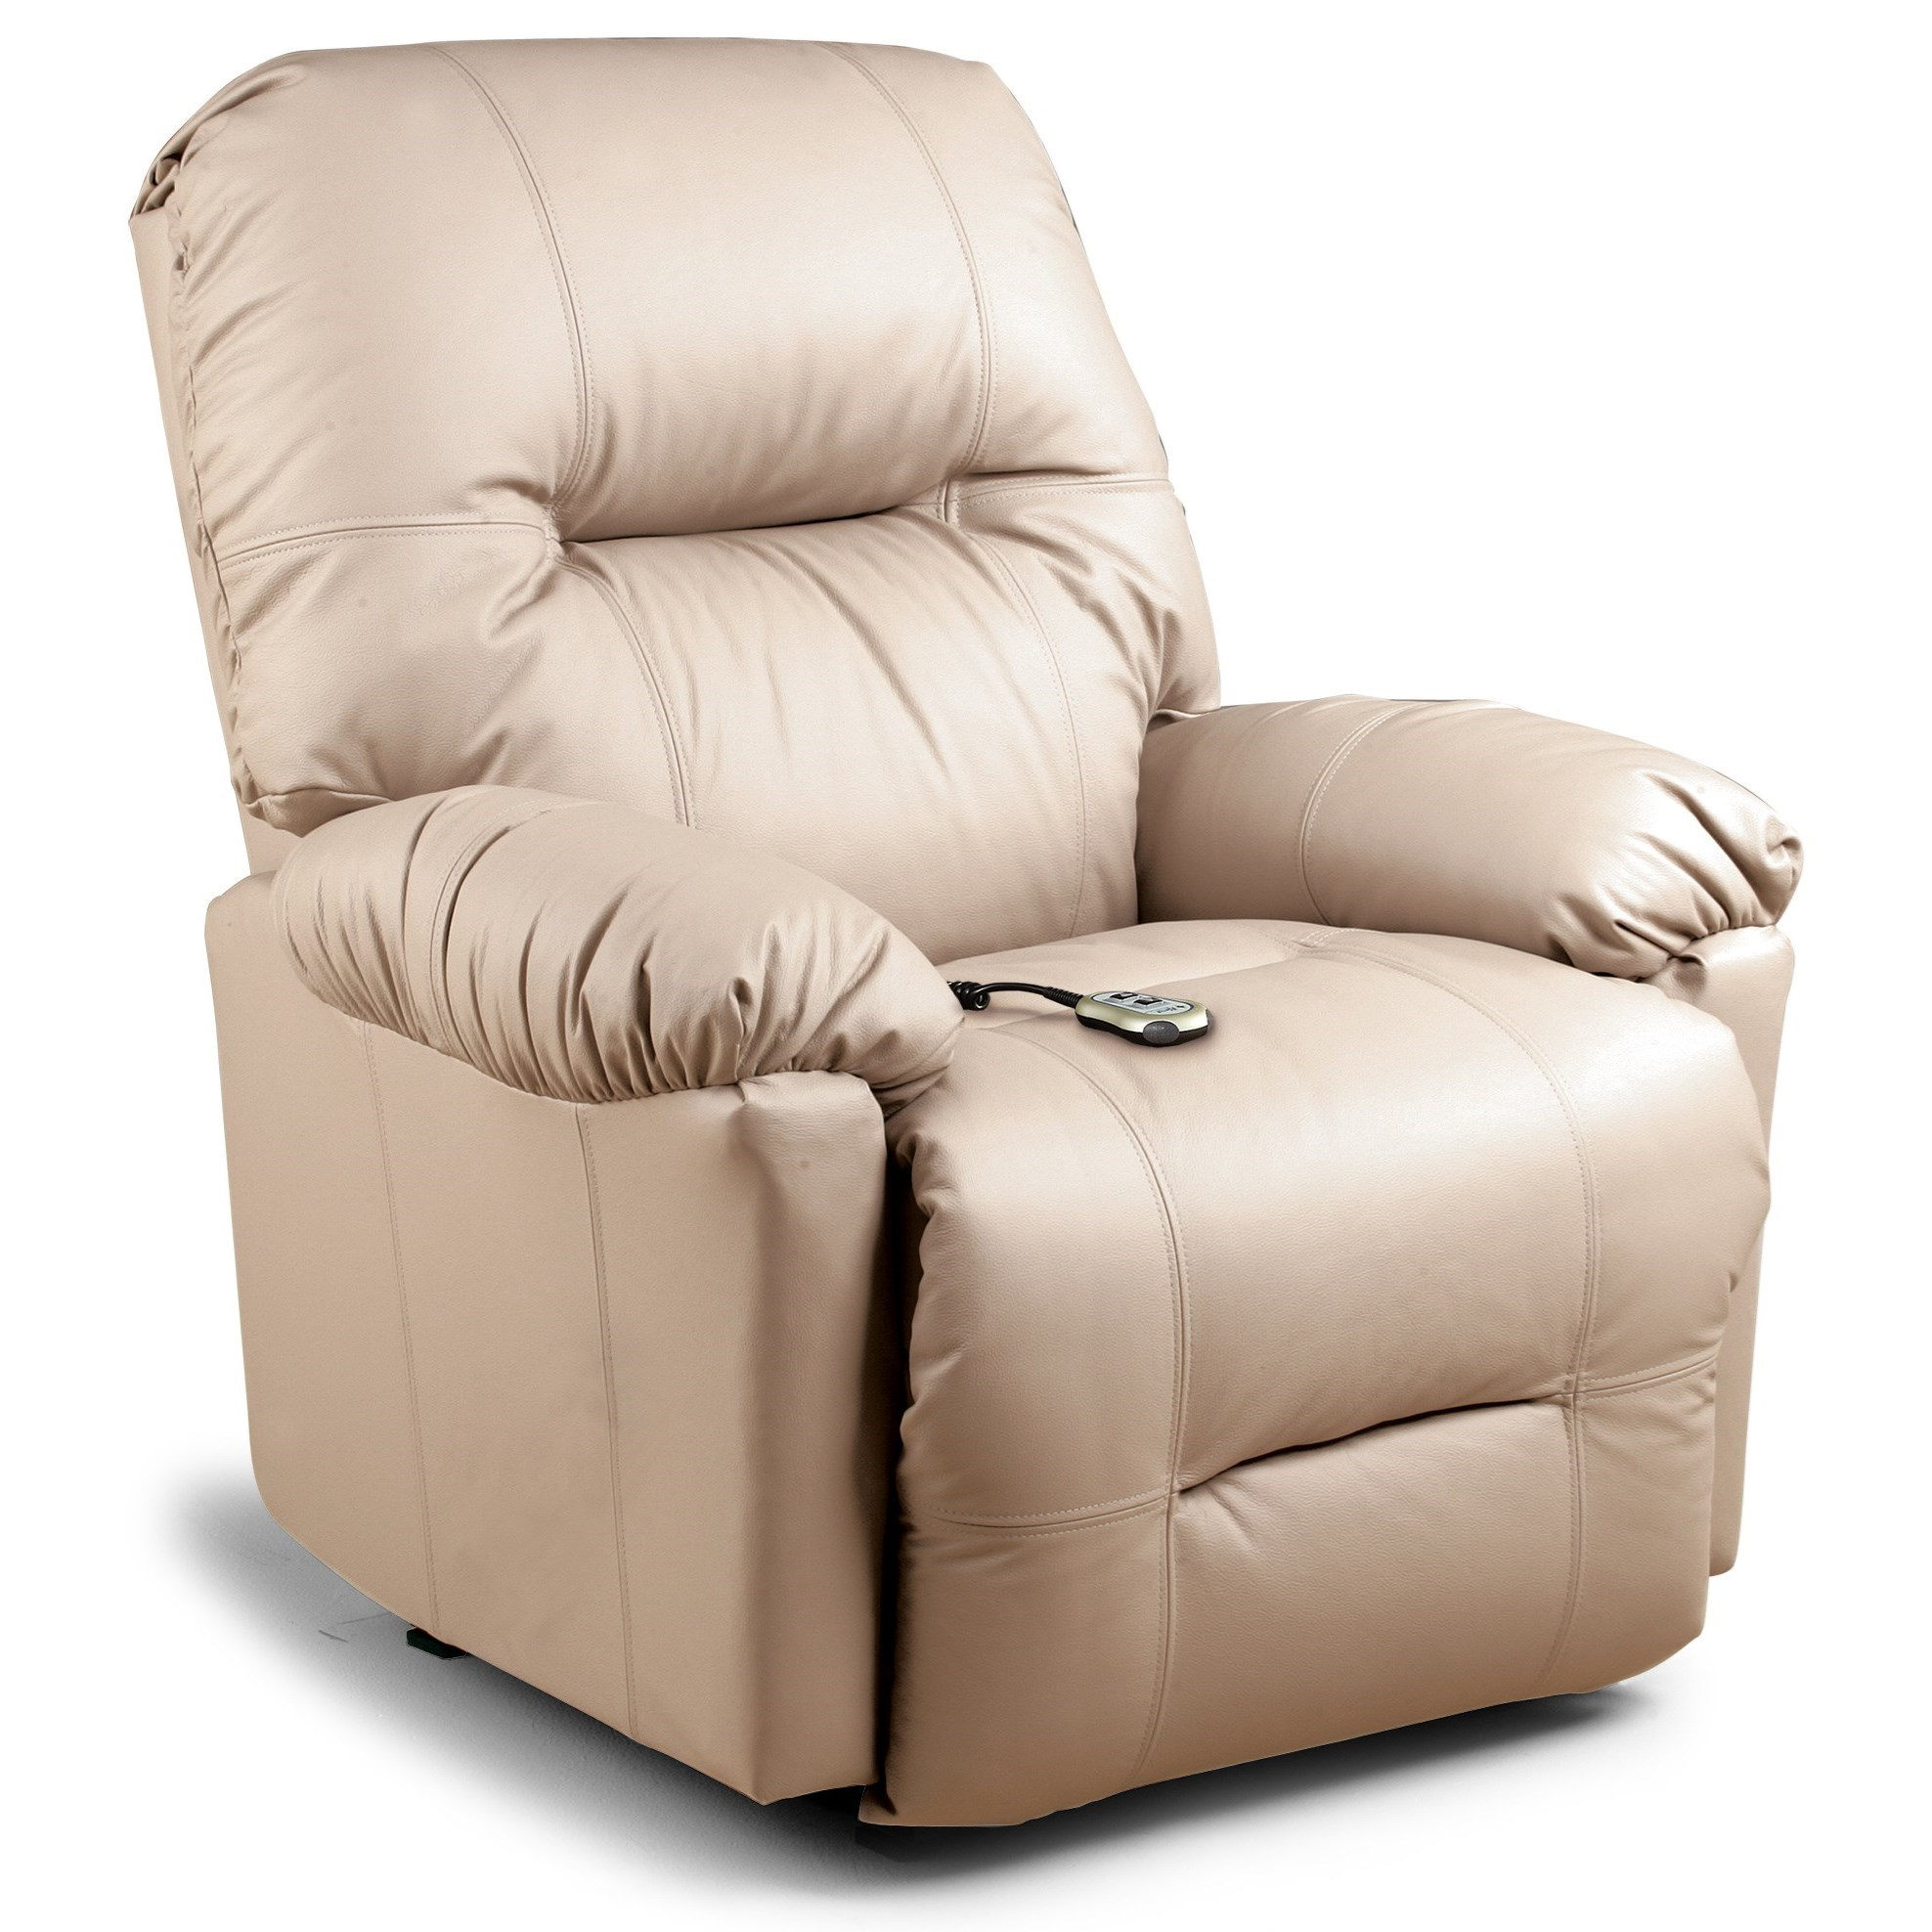 Lift Chairs Recliners Best Home Furnishings Petite Recliners Wynette Power Lift